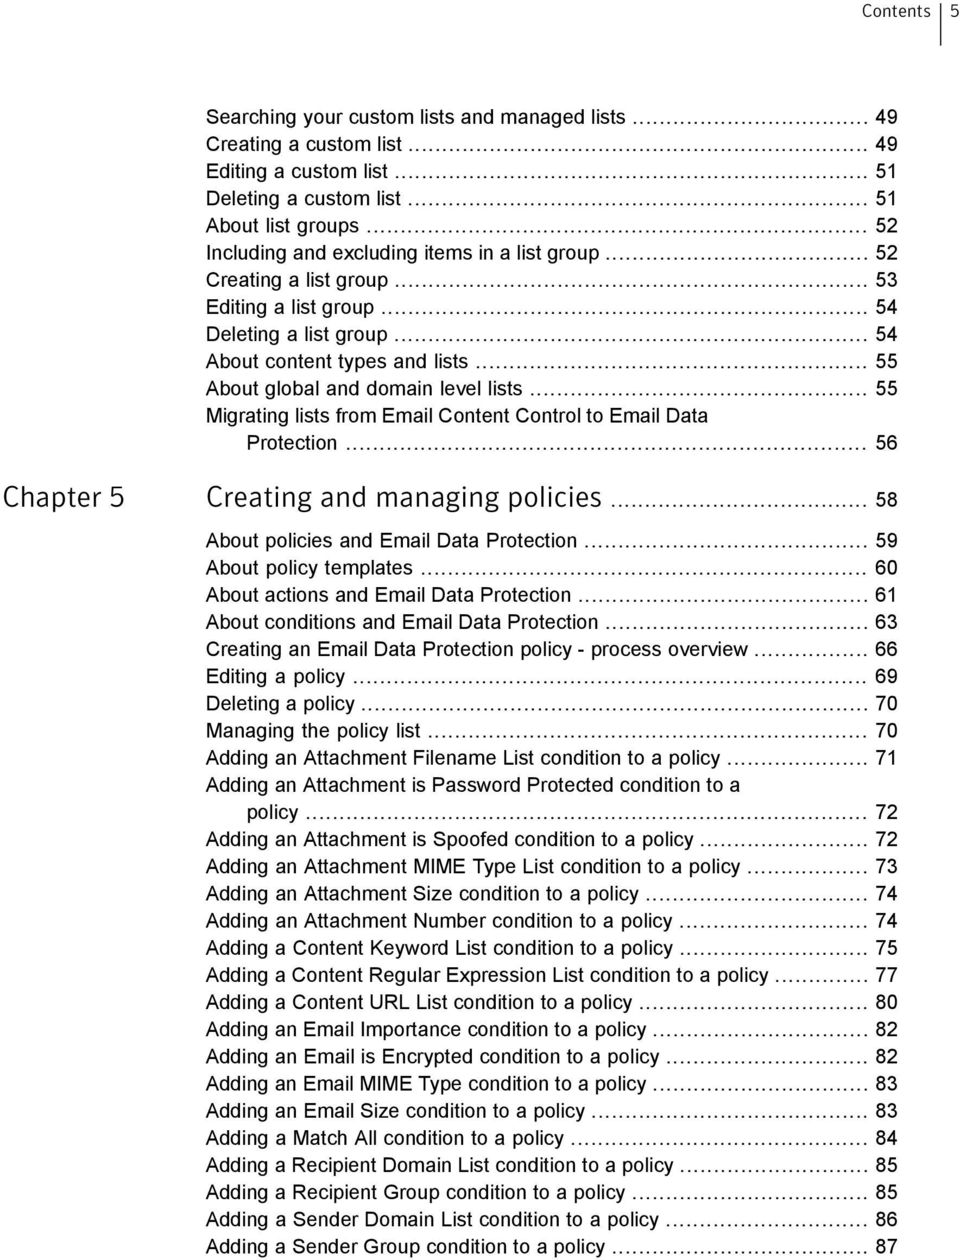 .. 55 About global and domain level lists... 55 Migrating lists from Email Content Control to Email Data Protection... 56 Chapter 5 Creating and managing policies.